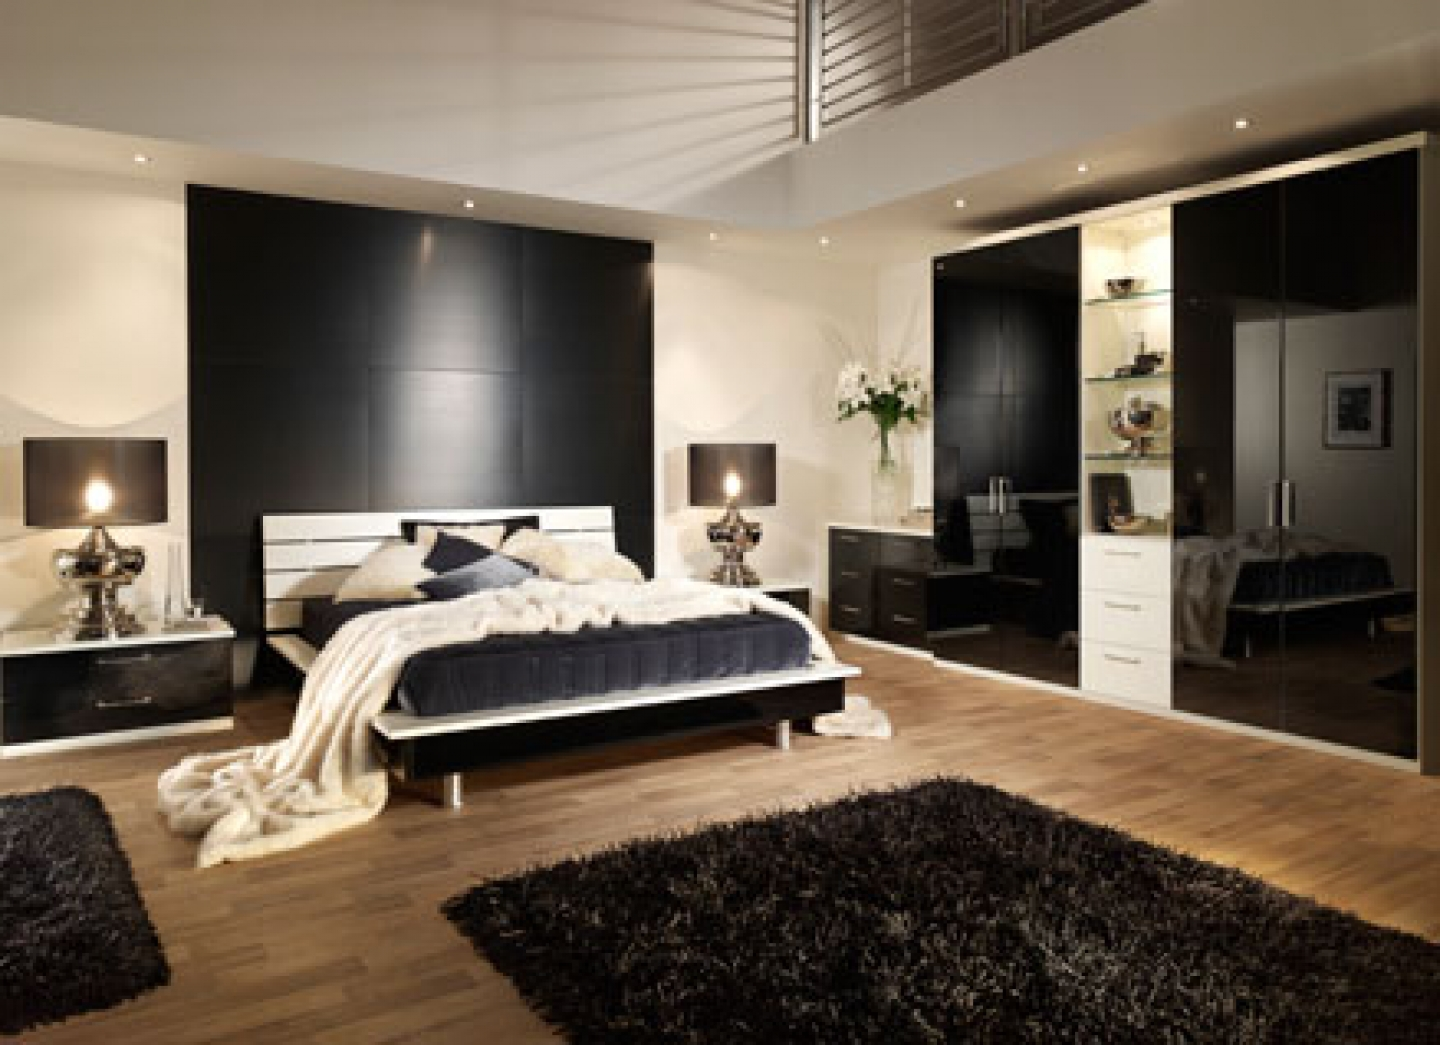 Deluxe Queen Size Bed Dimensions Ideas (View 3 of 10)